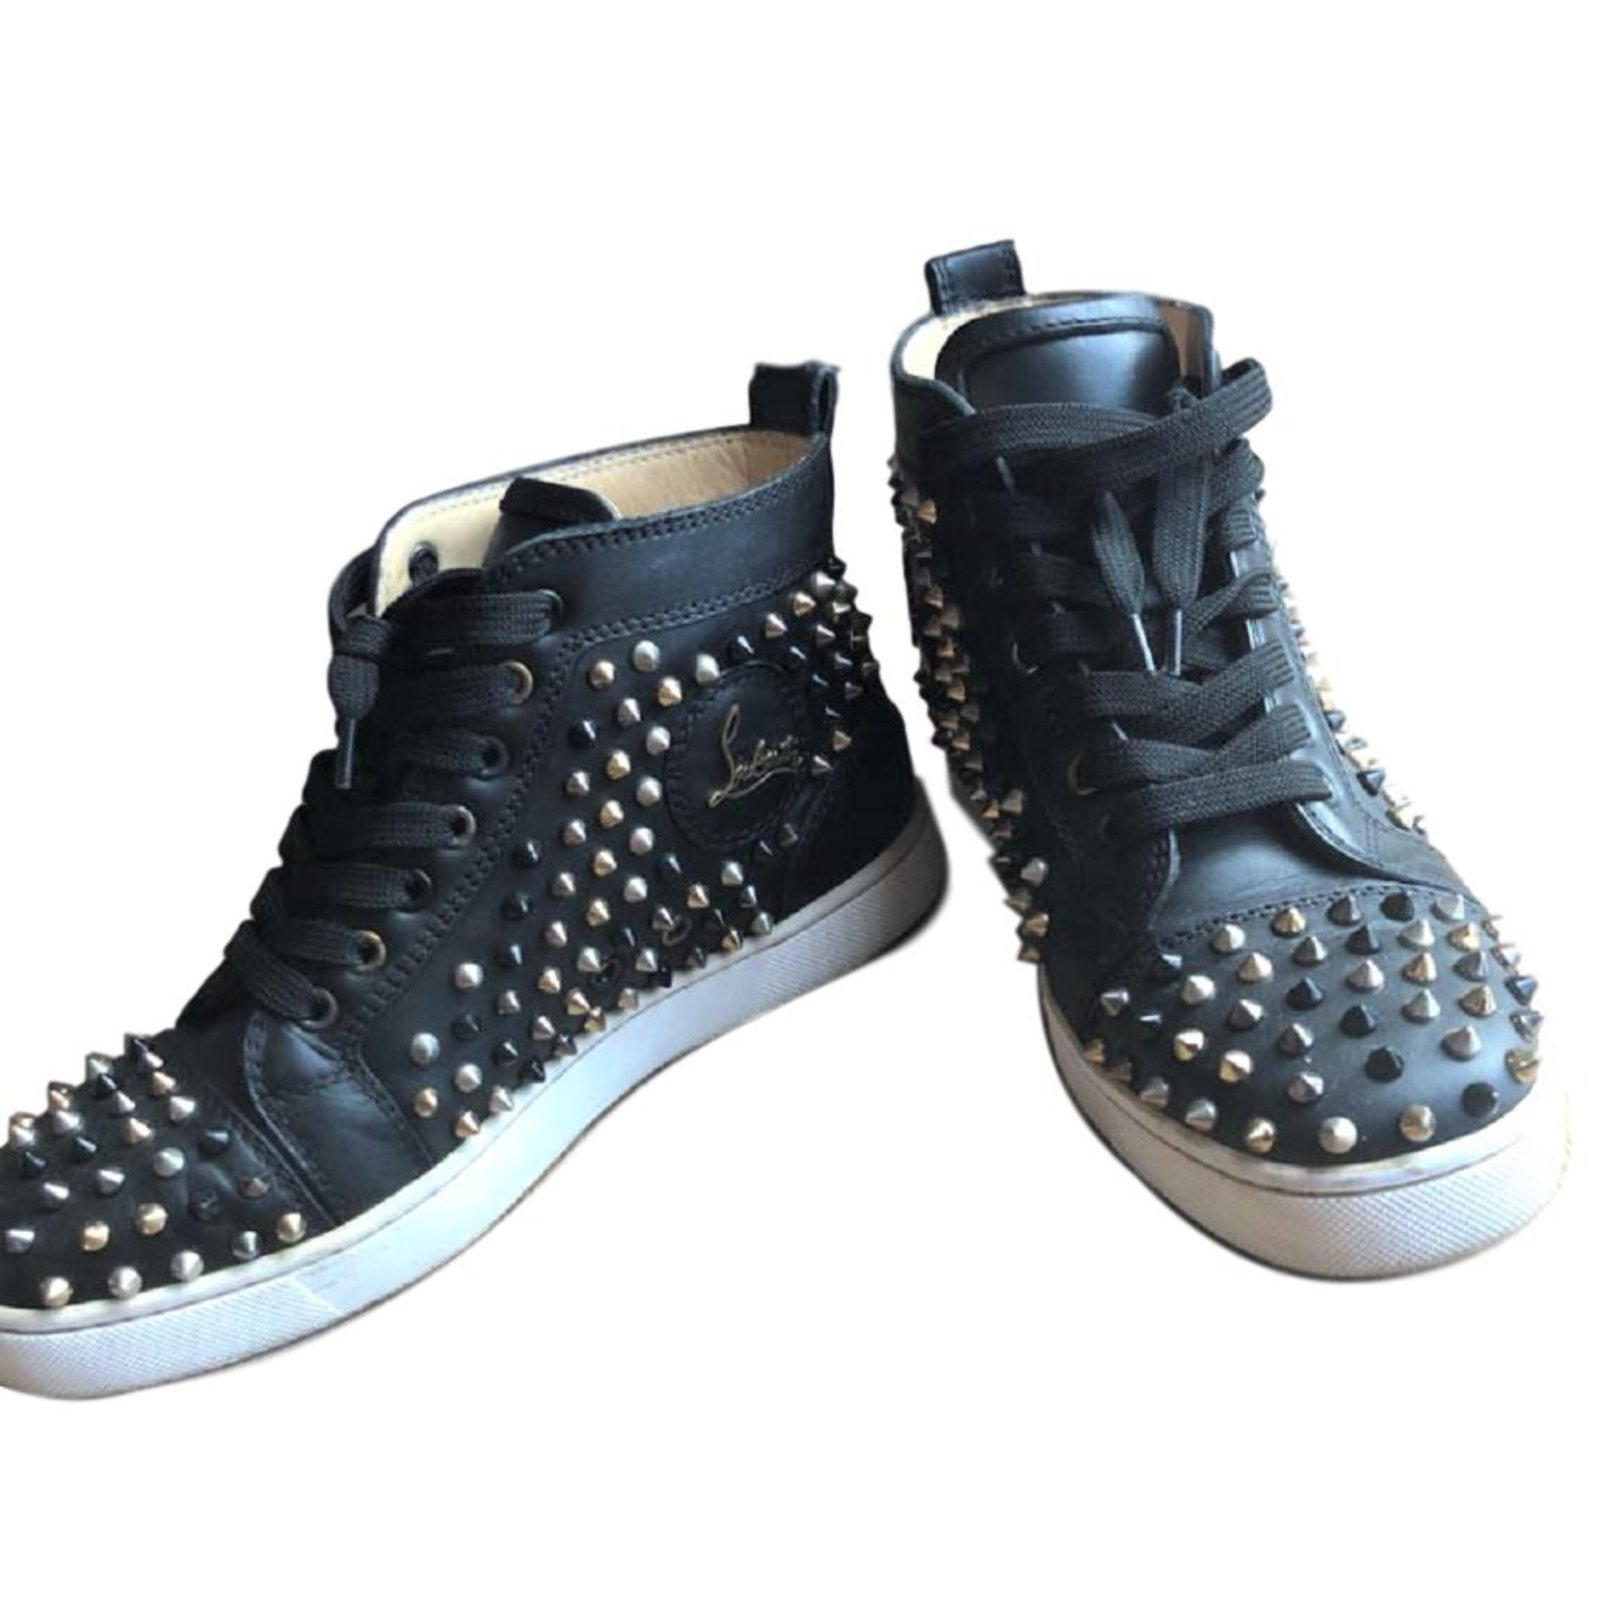 5ce9408cbcd Christian Louboutin Black spiked lace up sneakers Sneakers Leather Black  ref.84127